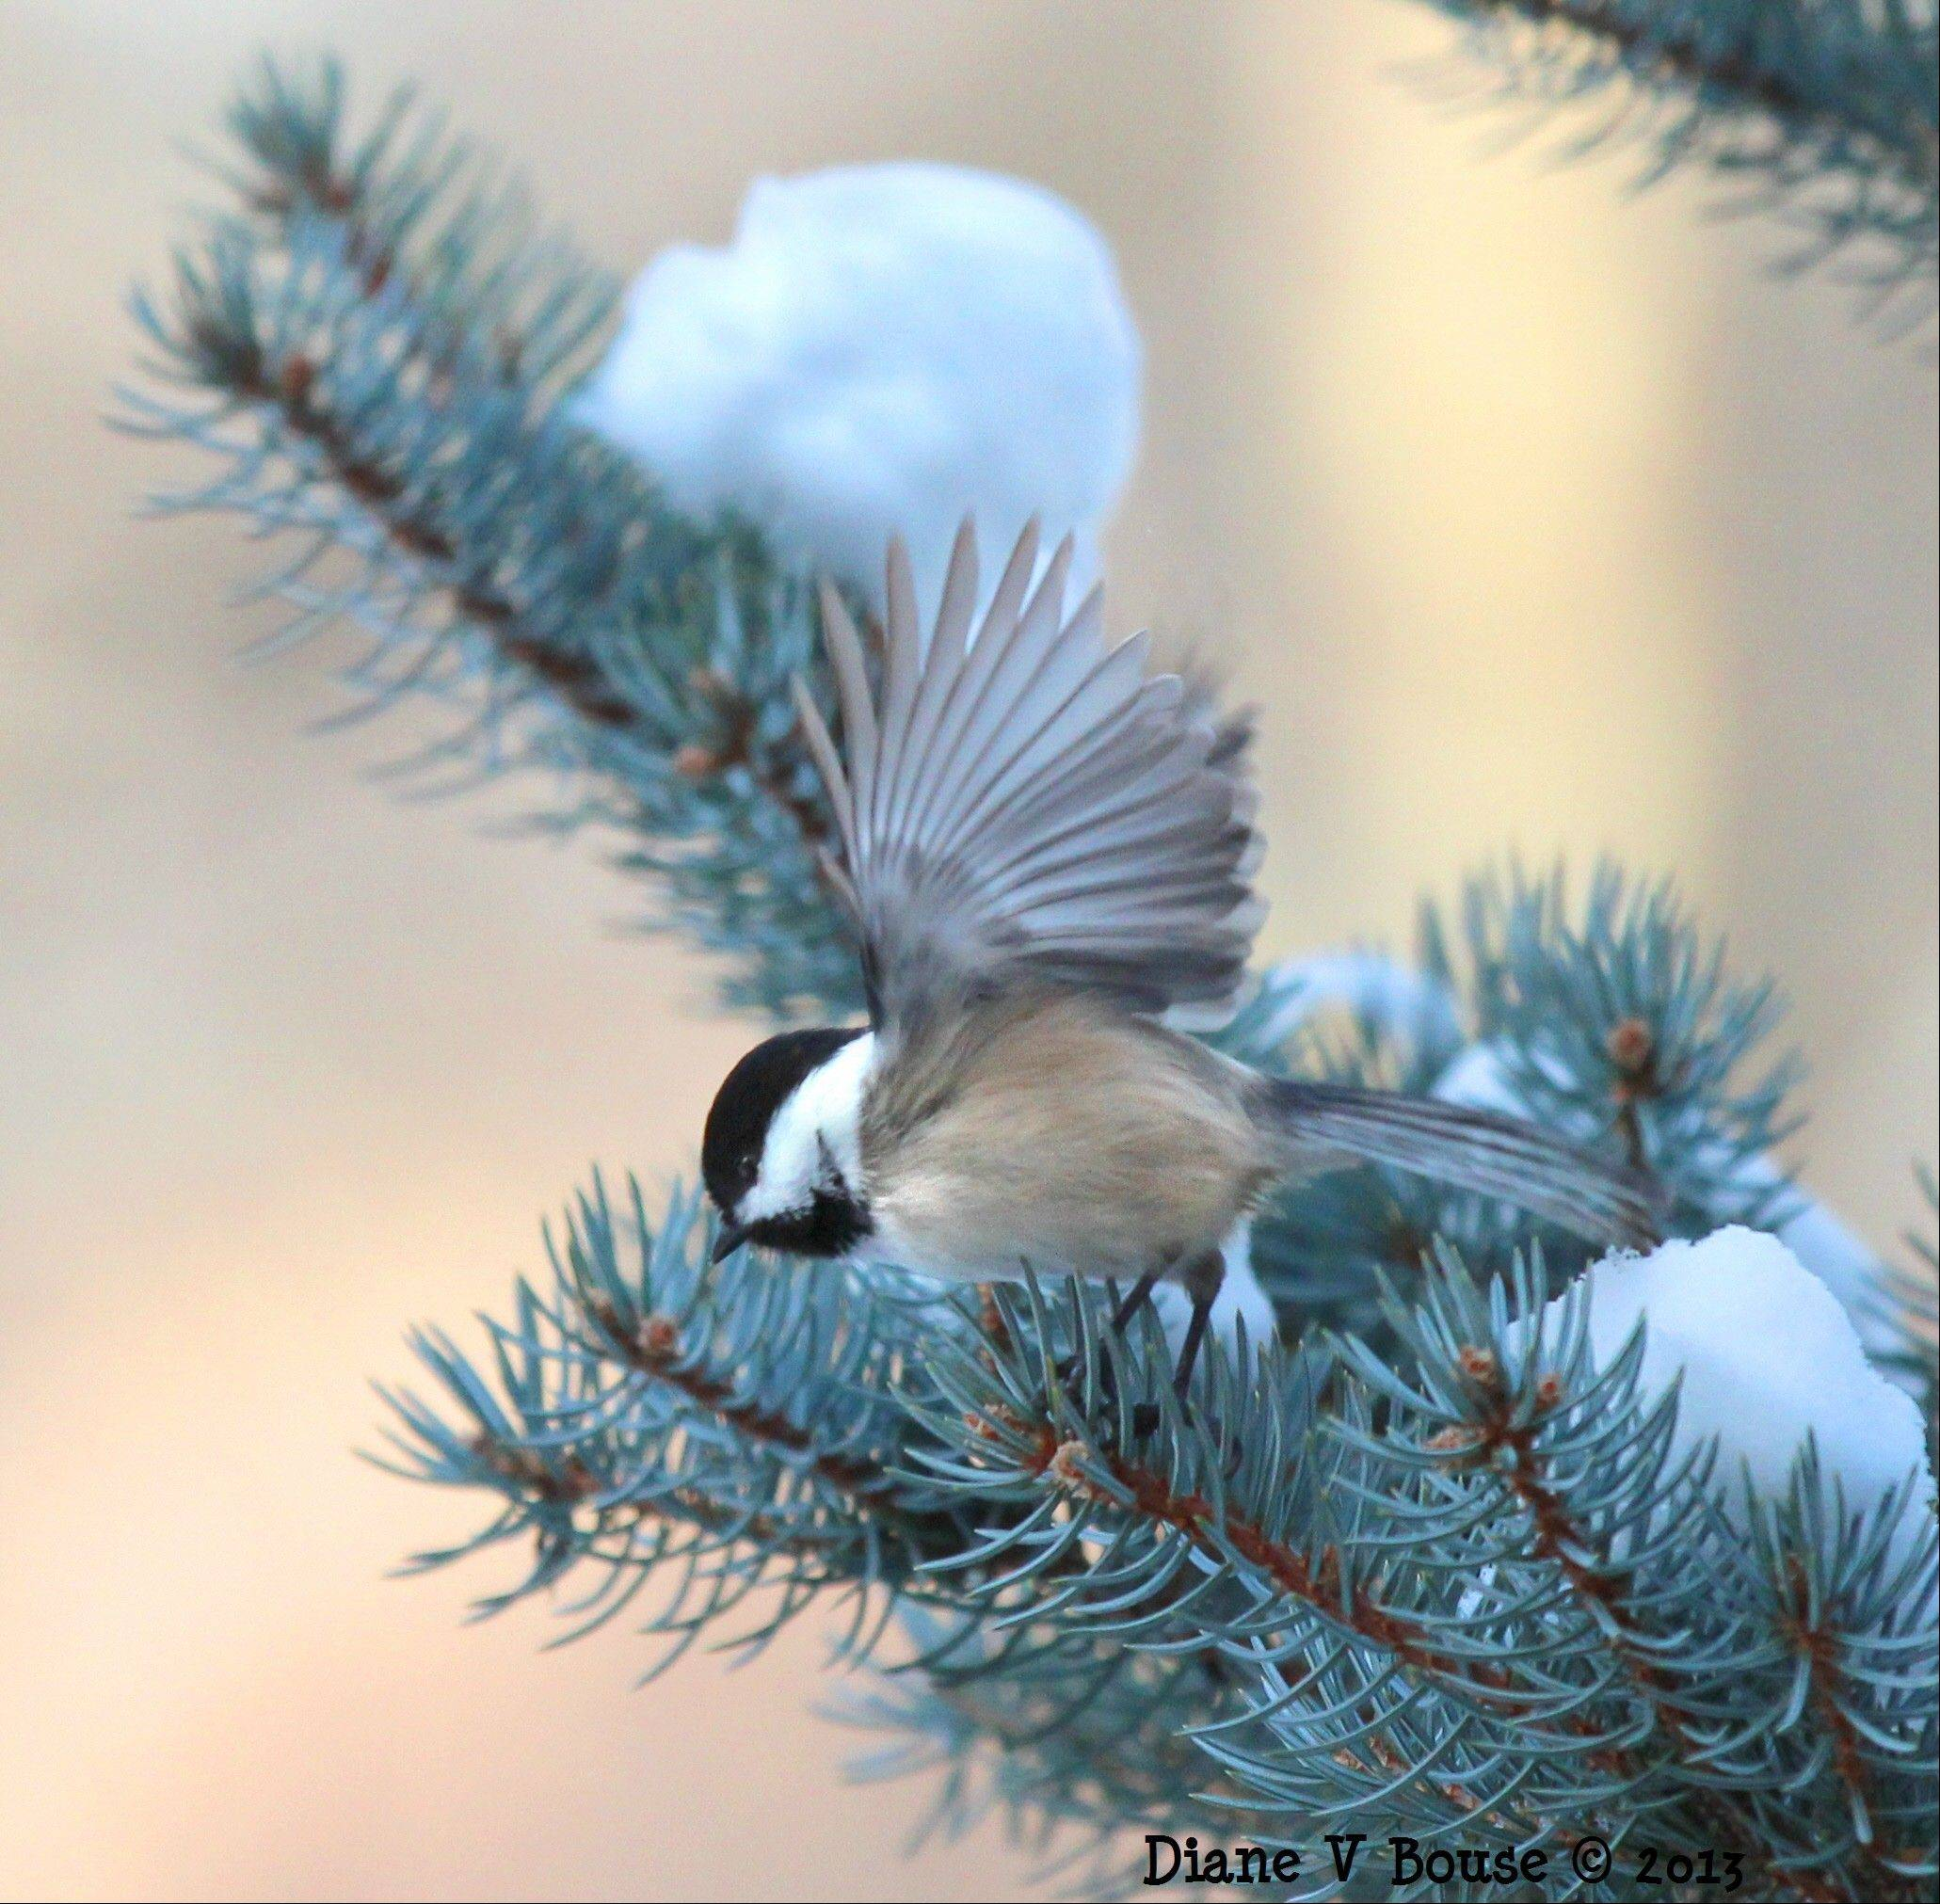 Chickadee in Pine Tree in Countryside